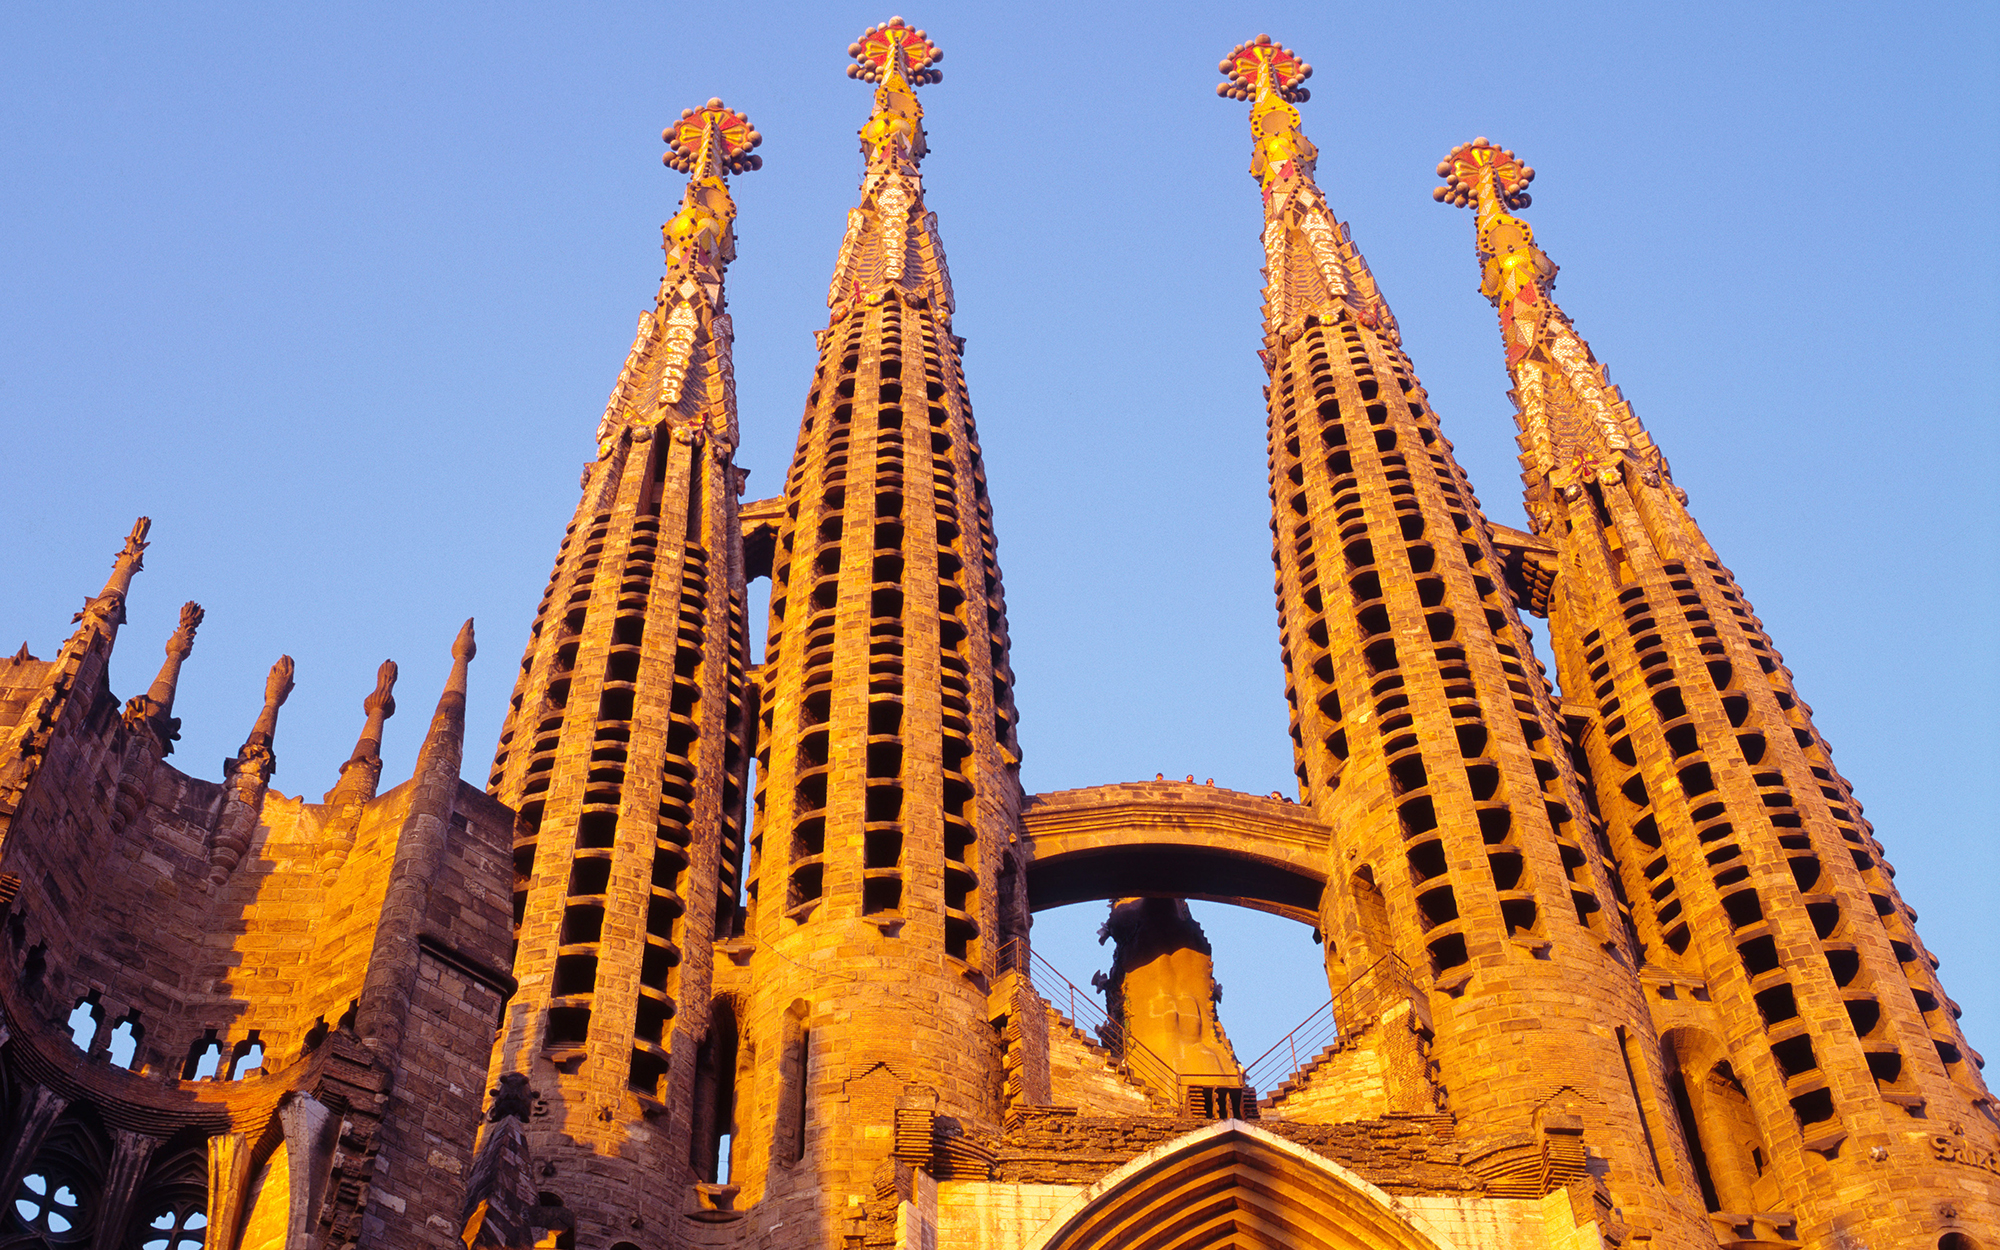 What Barcelona's Sagrada Familia Will Look Like When It's Completed